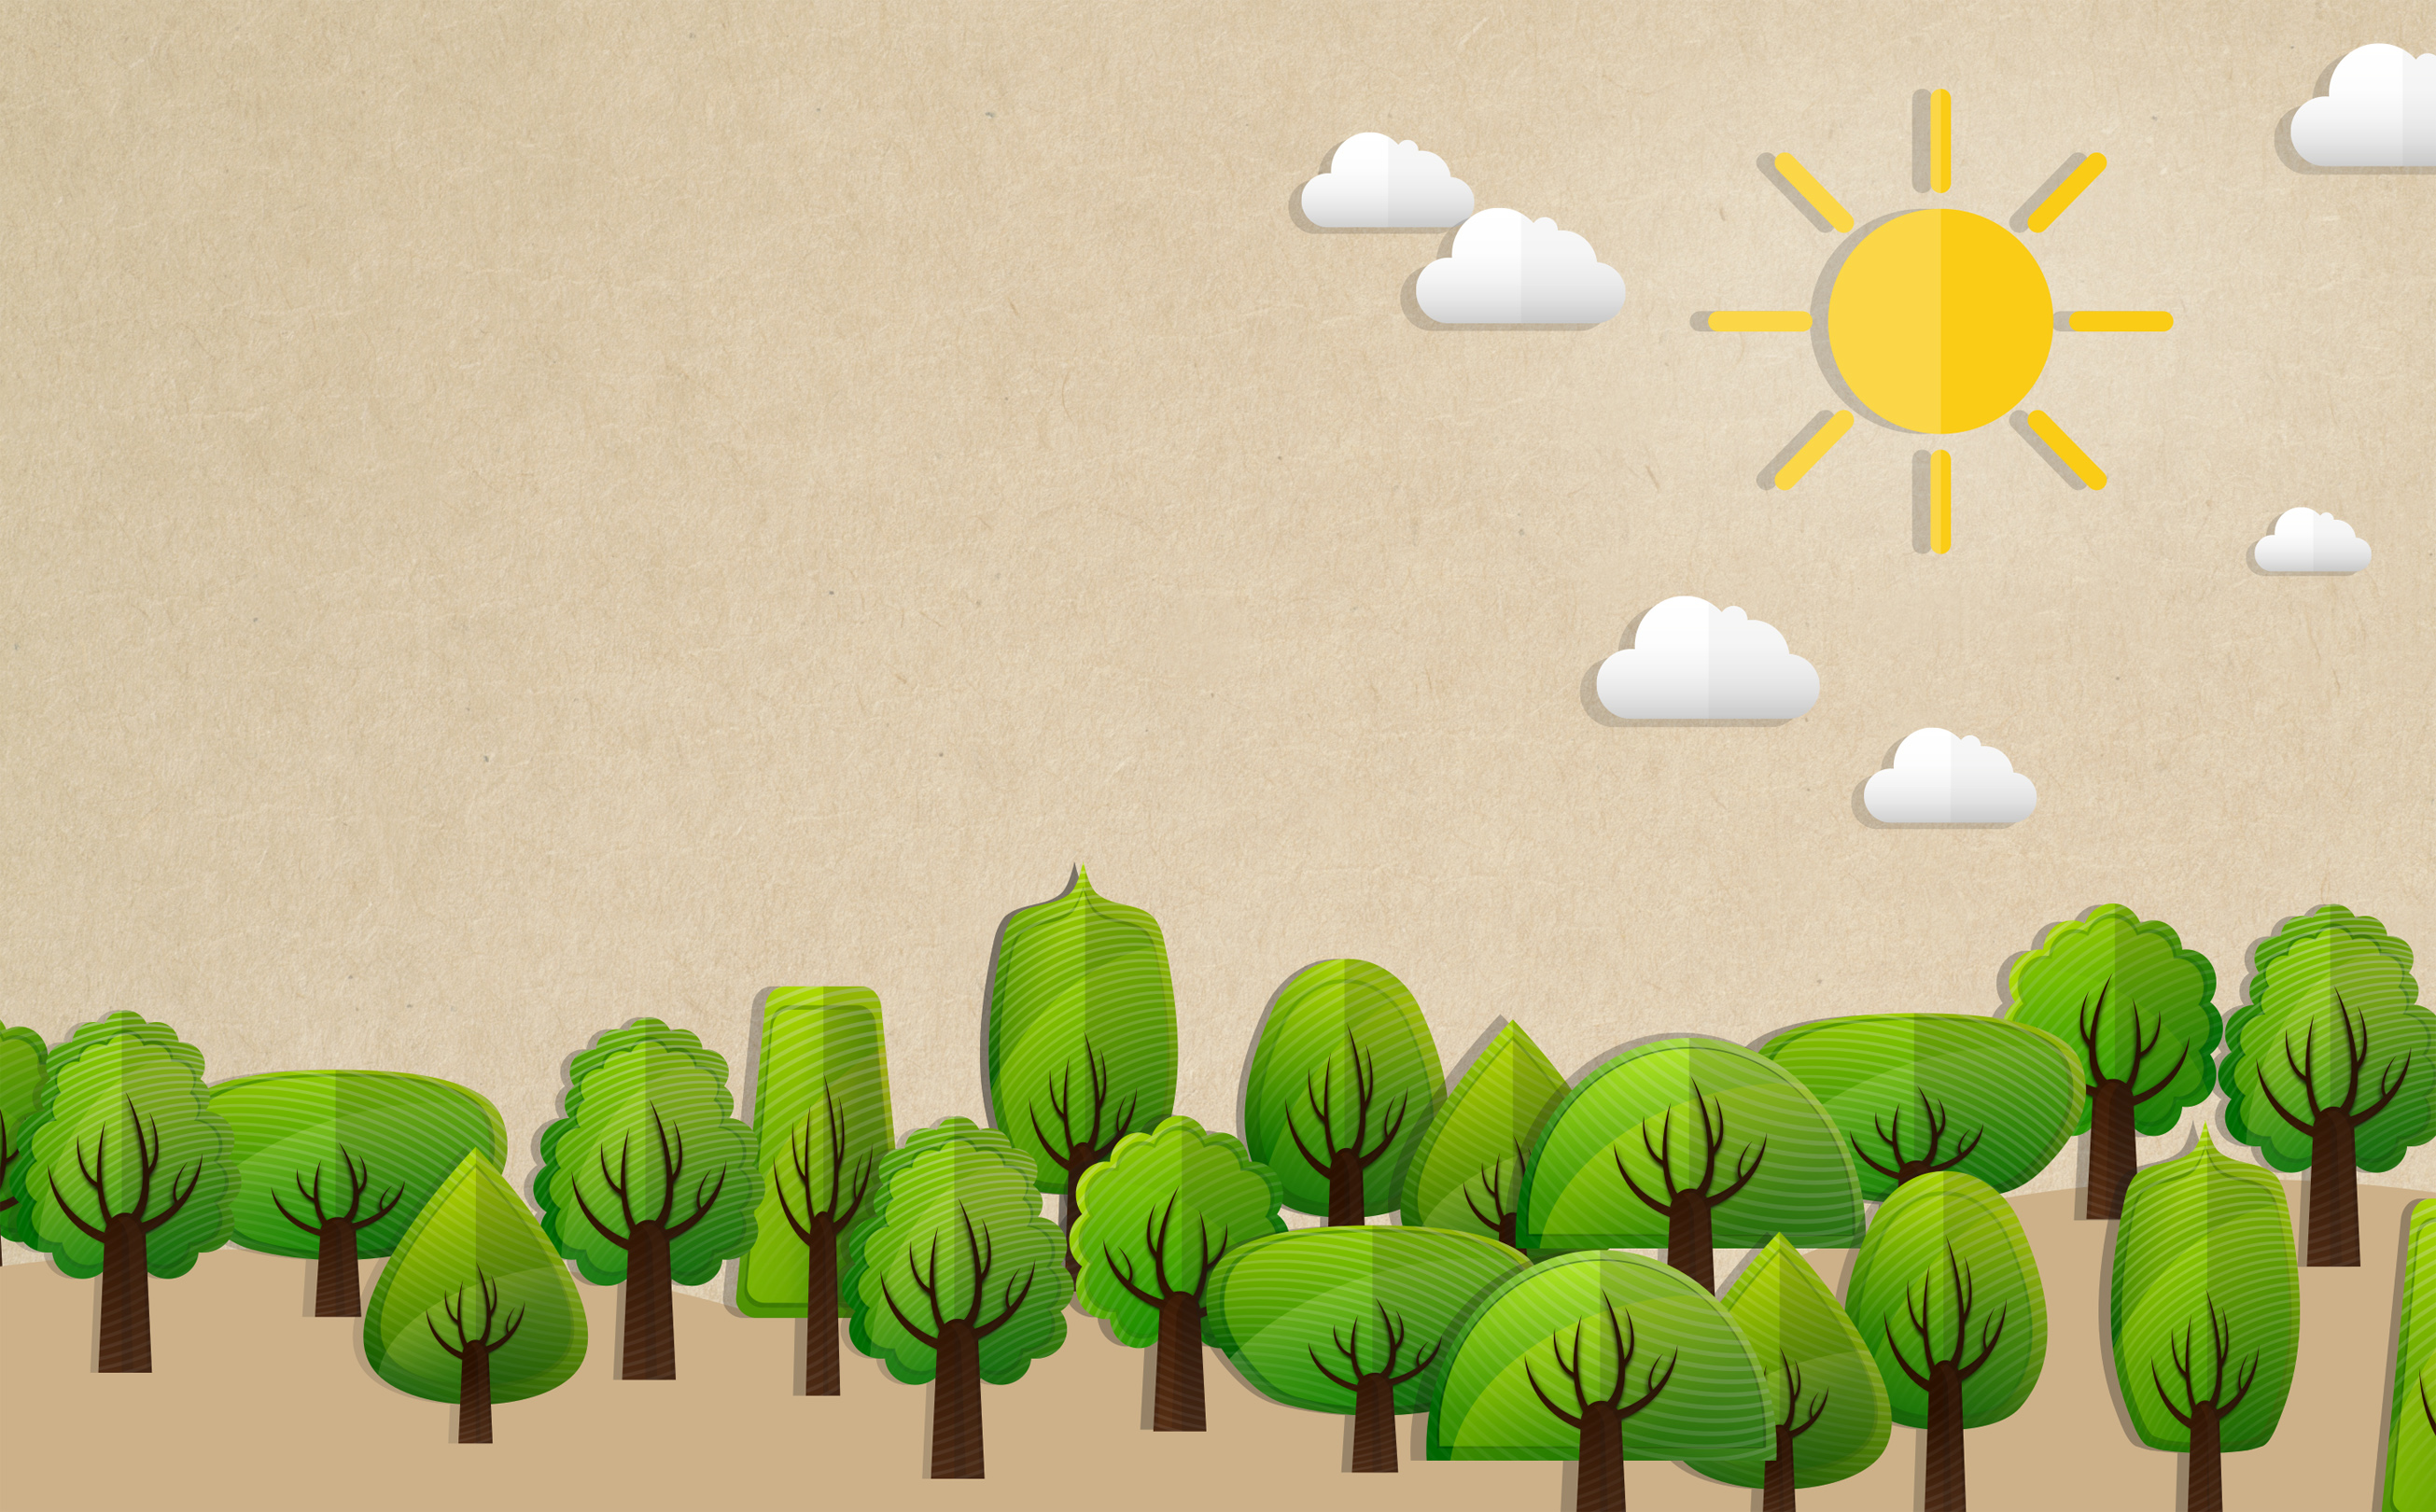 Ecology Concept with Trees - With Copyspace, Presentation, Power, Poster, Protection, HQ Photo